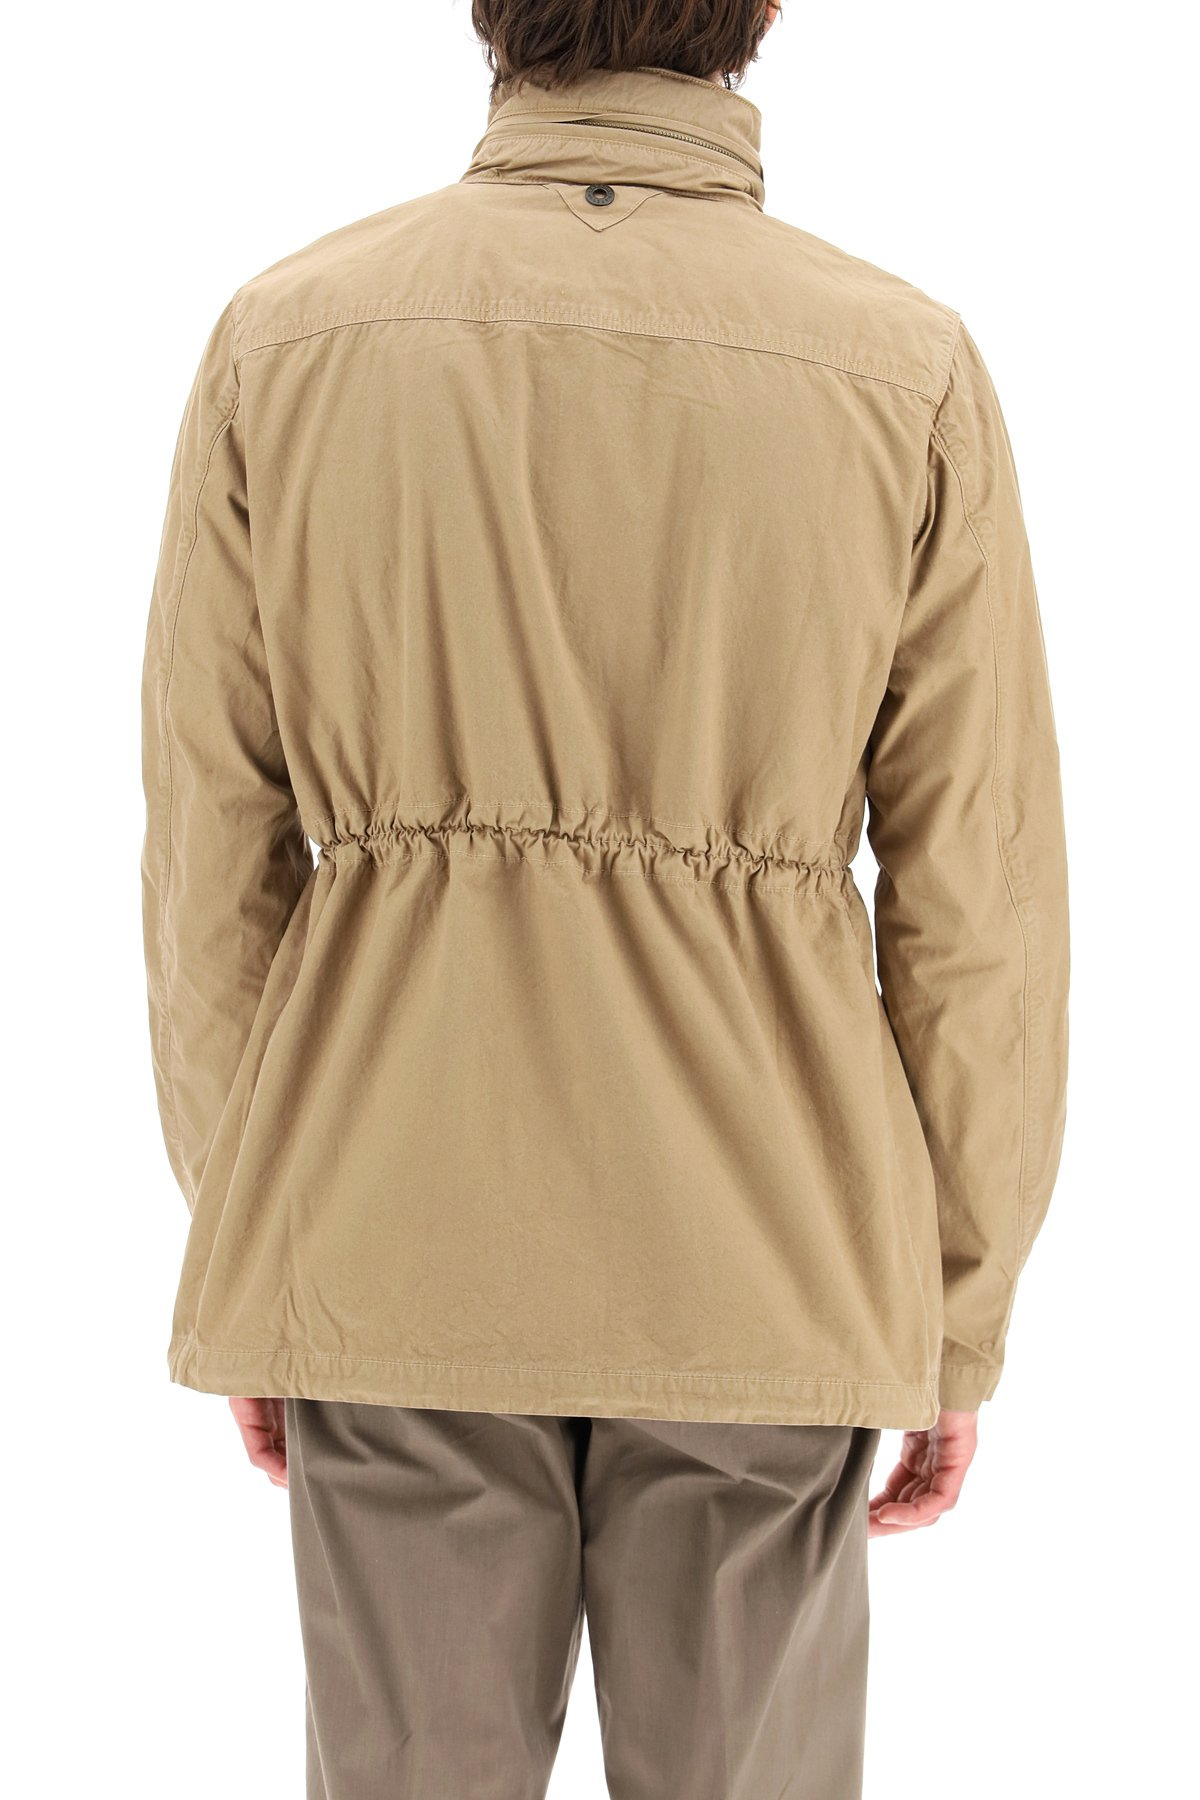 Barbour giacca crole in misto cotone